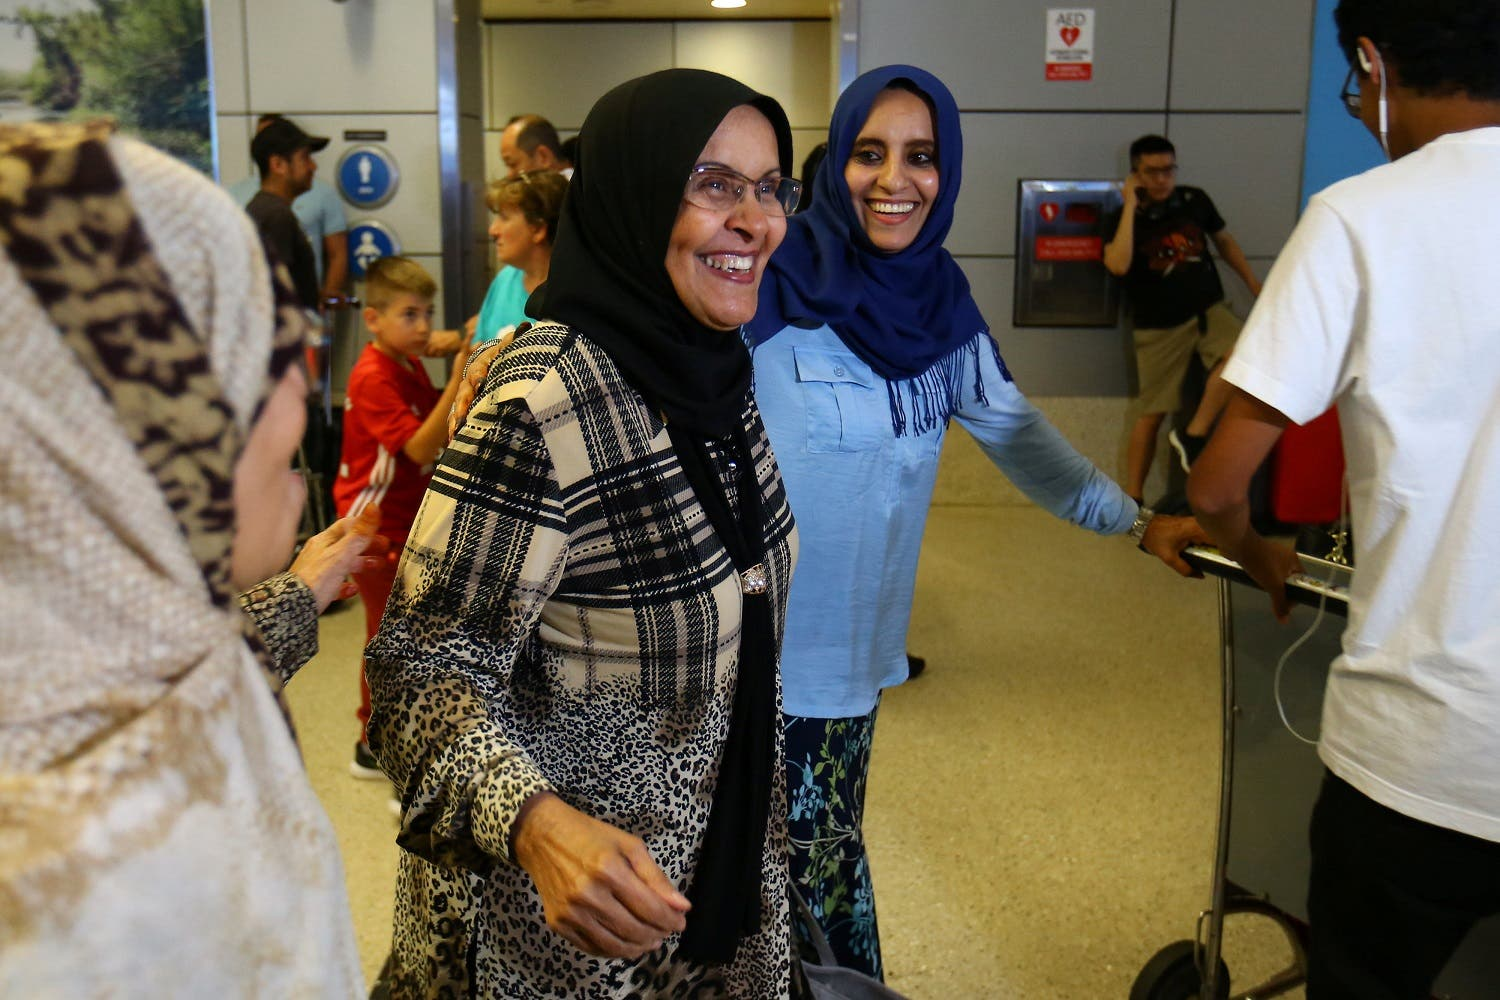 Hanadi Al-Hai (R) welcomes her mother traveling from Jordan on a Yemeni passport following the reinstatement by the US Supreme Court of portions of the executive order in Los Angeles, California, US, June 29, 2017. (Reuters)